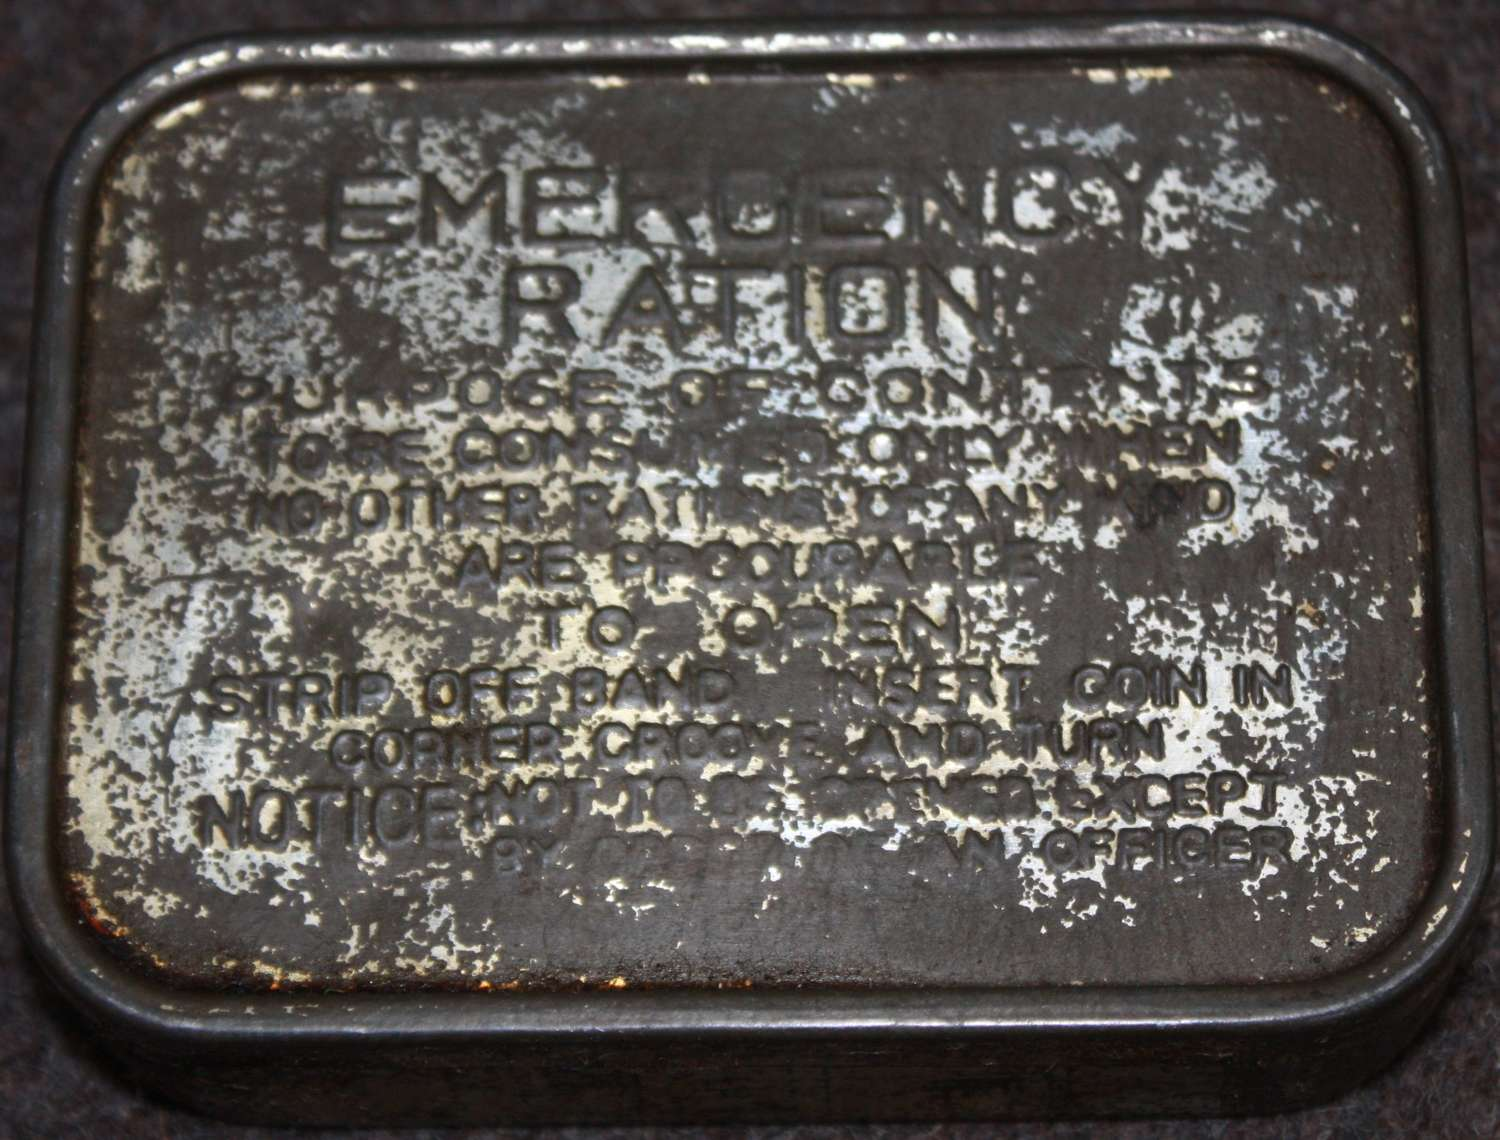 A WELL USED EXAMPLE OF THE WWII EMERGENCY RATION TIN